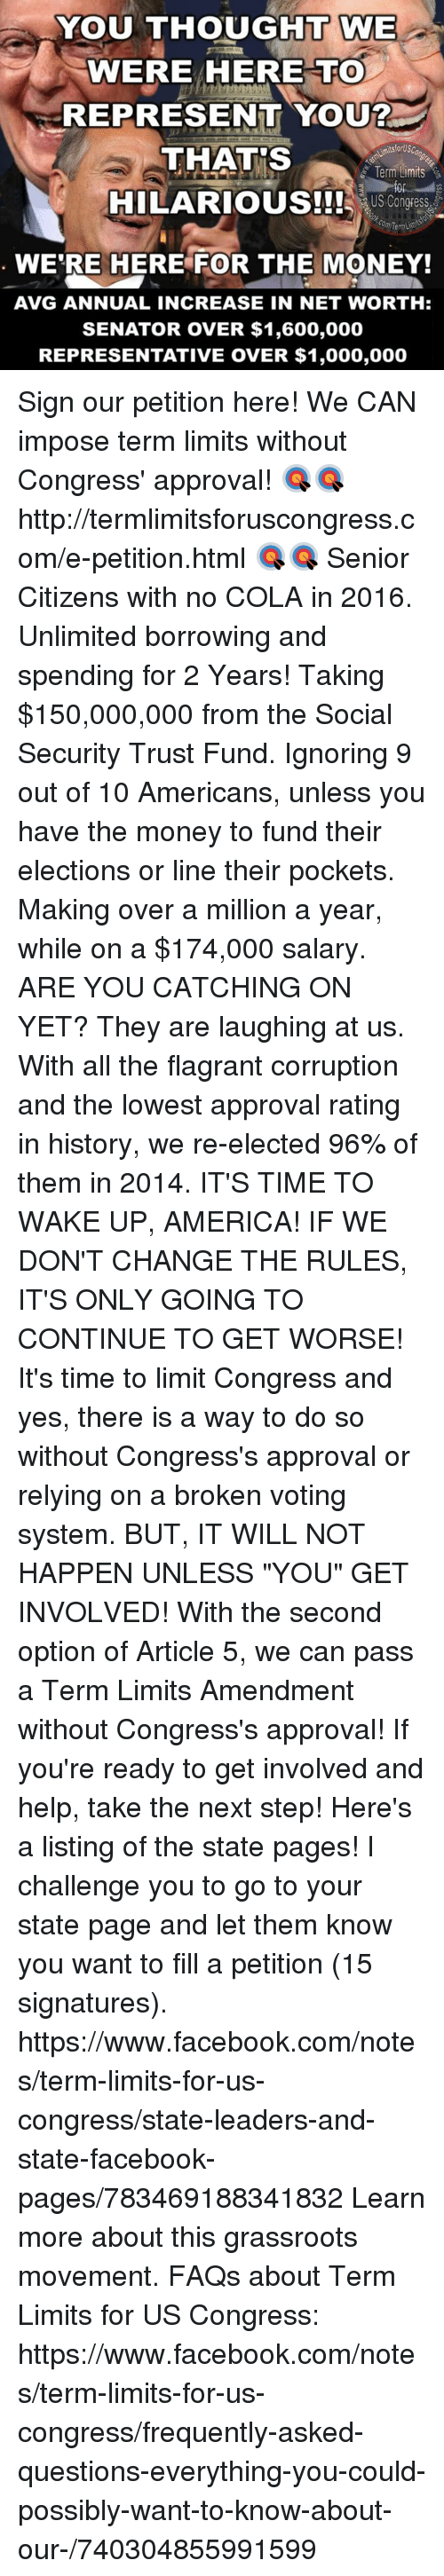 """America, Facebook, and Ignorant: YOU THOUGHT WE  WE  WERE HERE TO  REPRESENT YOU?  ktsforUSC  THATS  Term Limits  HILARIOUS!!! US Congress  WERE HERE FOR THE MONEY!  AVG ANNUAL INCREASE IN NET WORTH:  SENATOR OVER $1,600,000  REPRESENTATIVE OVER $1,000,000 Sign our petition here! We CAN impose term limits without Congress' approval! 🎯🎯http://termlimitsforuscongress.com/e-petition.html 🎯🎯  Senior Citizens with no COLA in 2016.  Unlimited borrowing and spending for 2 Years!  Taking $150,000,000 from the Social Security Trust Fund.  Ignoring 9 out of 10 Americans, unless you have the money to fund their elections or line their pockets.  Making over a million a year, while on a $174,000 salary.  ARE YOU CATCHING ON YET?  They are laughing at us.  With all the flagrant corruption and the lowest approval rating in history, we re-elected 96% of them in 2014.  IT'S TIME TO WAKE UP, AMERICA!  IF WE DON'T CHANGE THE RULES, IT'S ONLY GOING TO CONTINUE TO GET WORSE!  It's time to limit Congress and yes, there is a way to do so without Congress's approval or relying on a broken voting system. BUT, IT WILL NOT HAPPEN UNLESS """"YOU"""" GET INVOLVED!  With the second option of Article 5, we can pass a Term Limits Amendment without Congress's approval!  If you're ready to get involved and help, take the next step! Here's a listing of the state pages! I challenge you to go to your state page and let them know you want to fill a petition (15 signatures). https://www.facebook.com/notes/term-limits-for-us-congress/state-leaders-and-state-facebook-pages/783469188341832  Learn more about this grassroots movement. FAQs about Term Limits for US Congress: https://www.facebook.com/notes/term-limits-for-us-congress/frequently-asked-questions-everything-you-could-possibly-want-to-know-about-our-/740304855991599"""